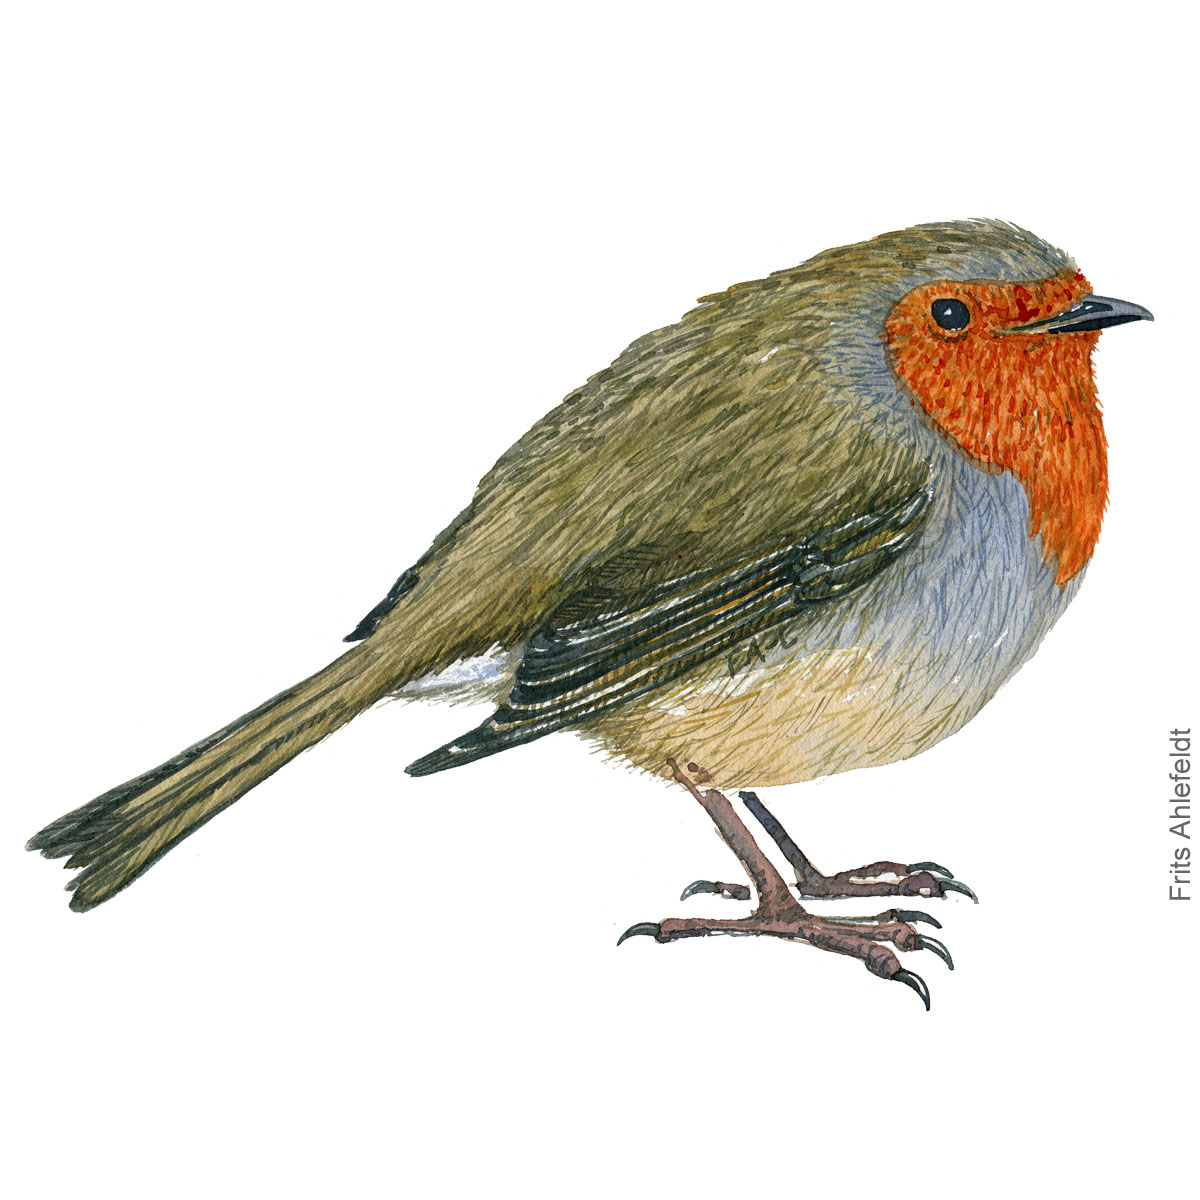 Roedhals - European robin - Bird painting in watercolor by Frits Ahlefeldt - Fugle akvarel